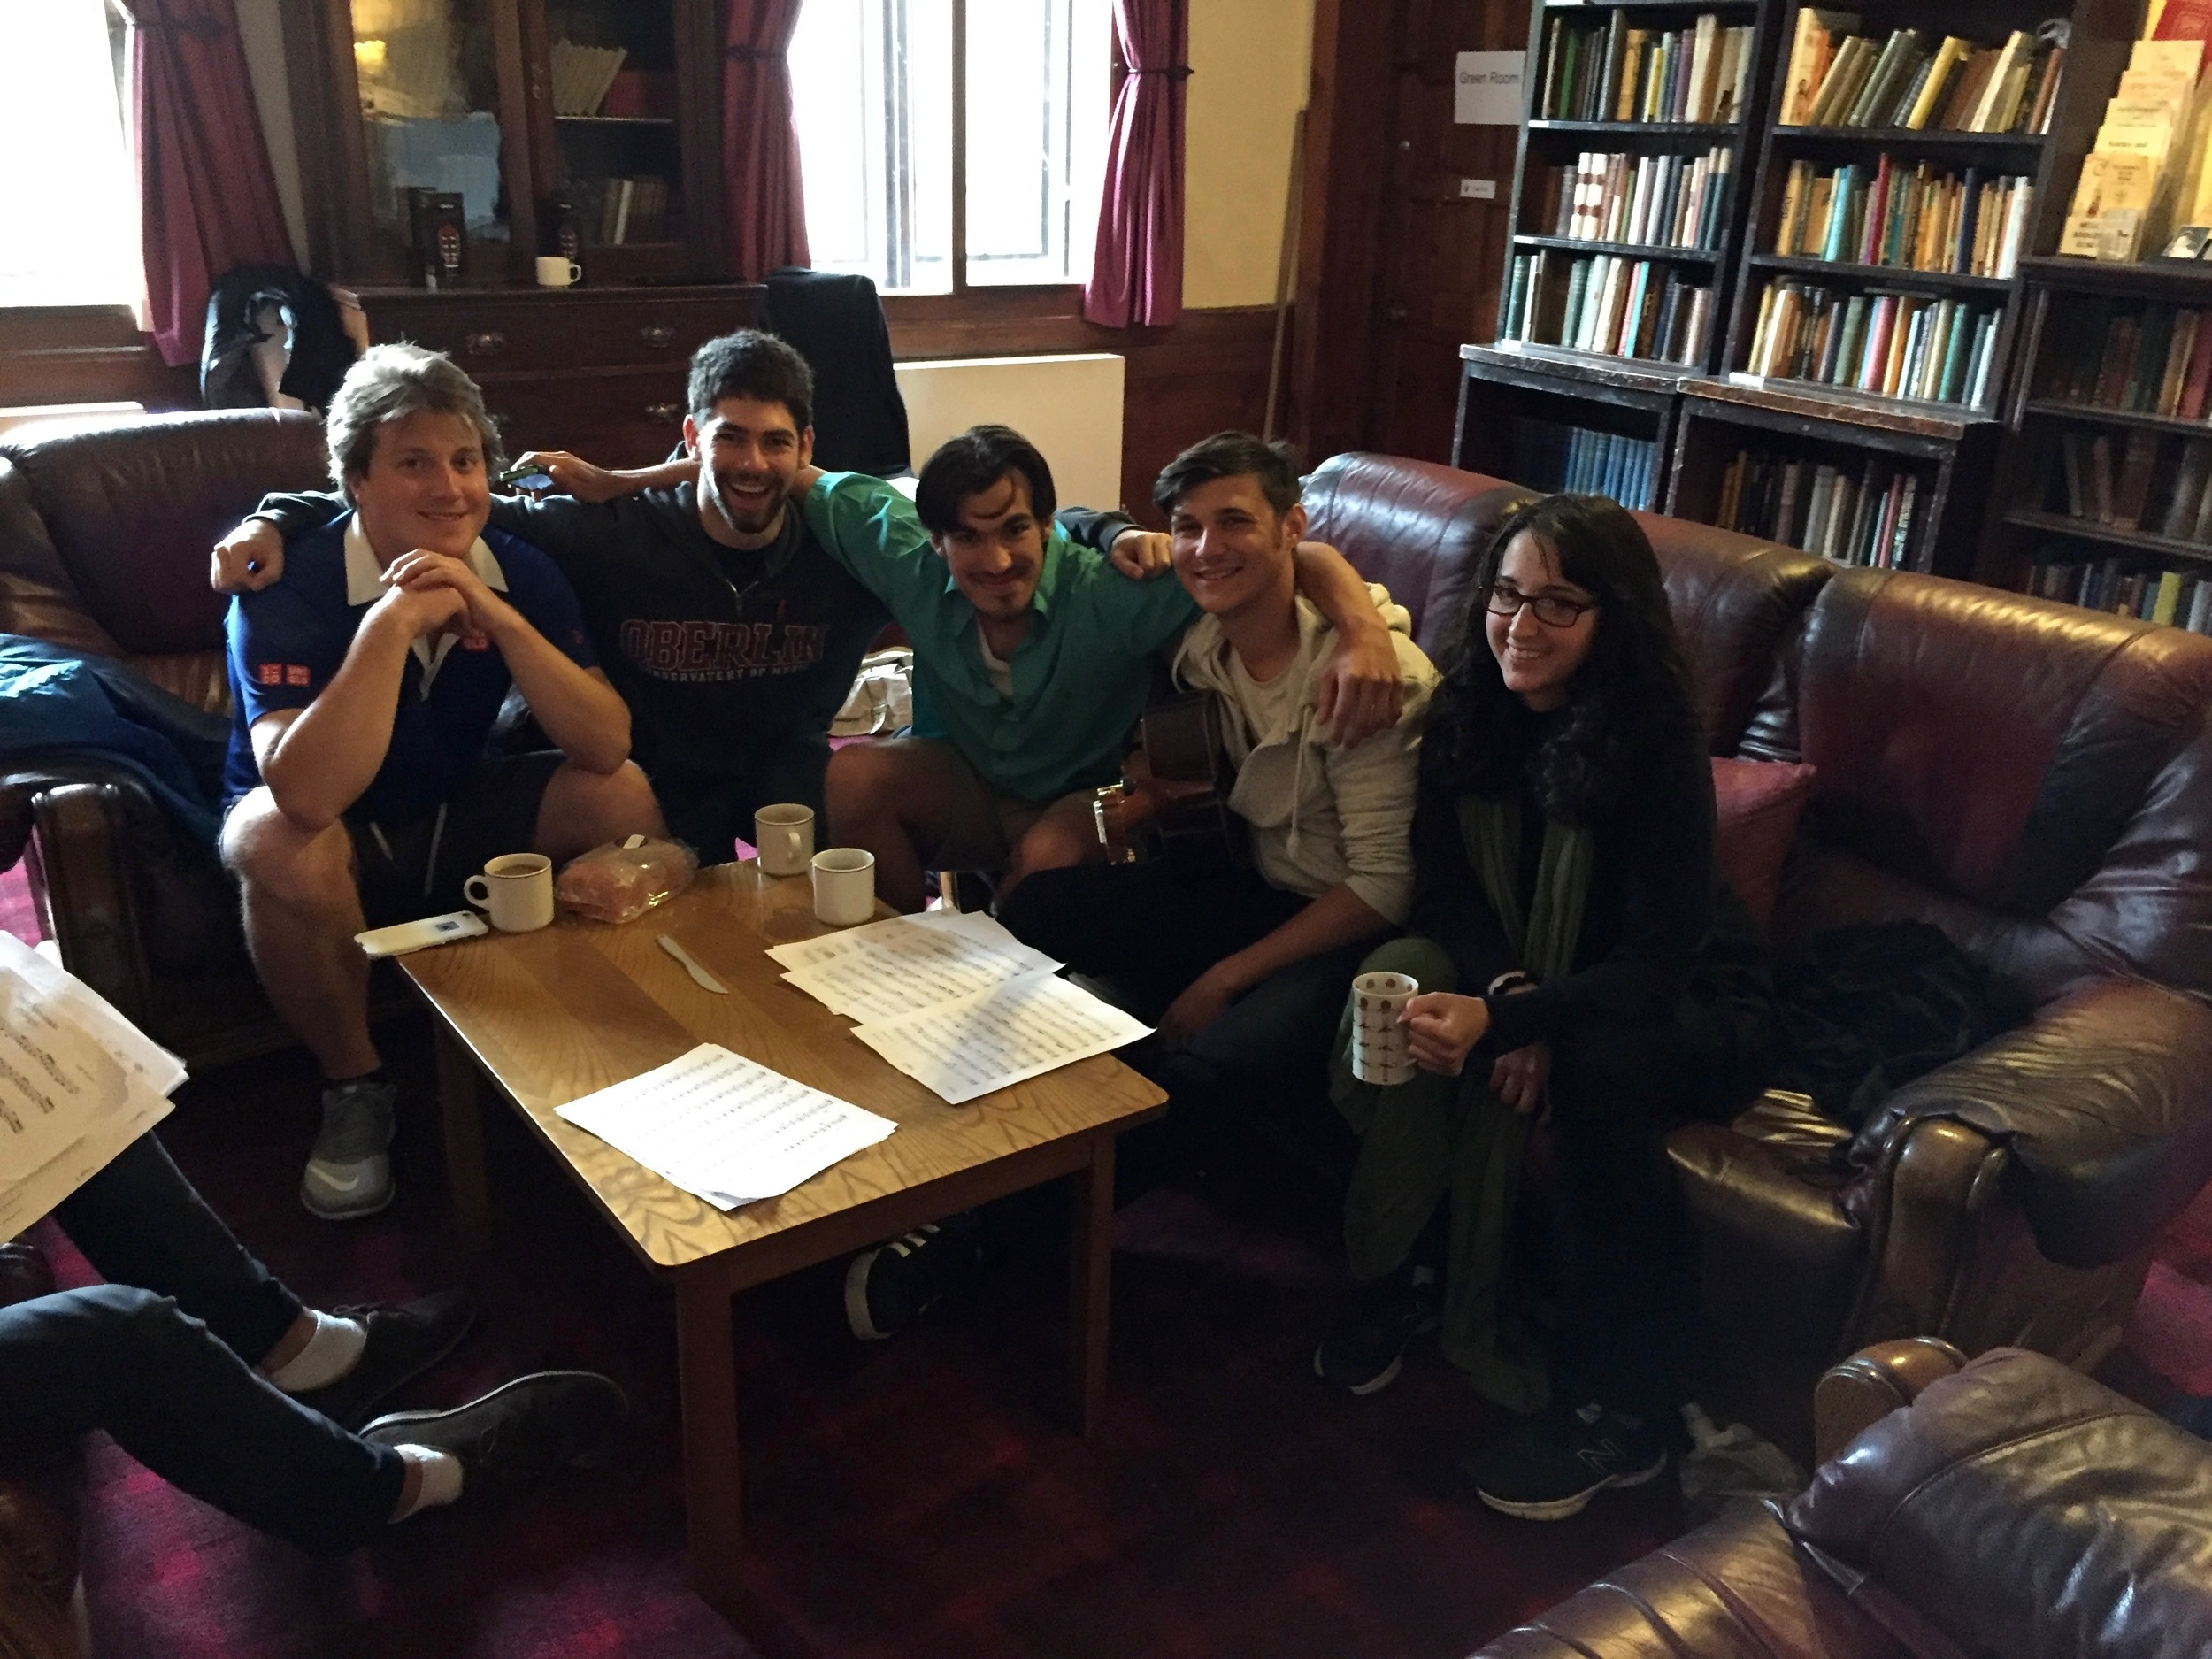 Hanging in the Cathedral's common room: Stephen Fazio, Collin Sterne, Mohit Dubey, Lenny Ranallo and his girlfriend, Sarah.